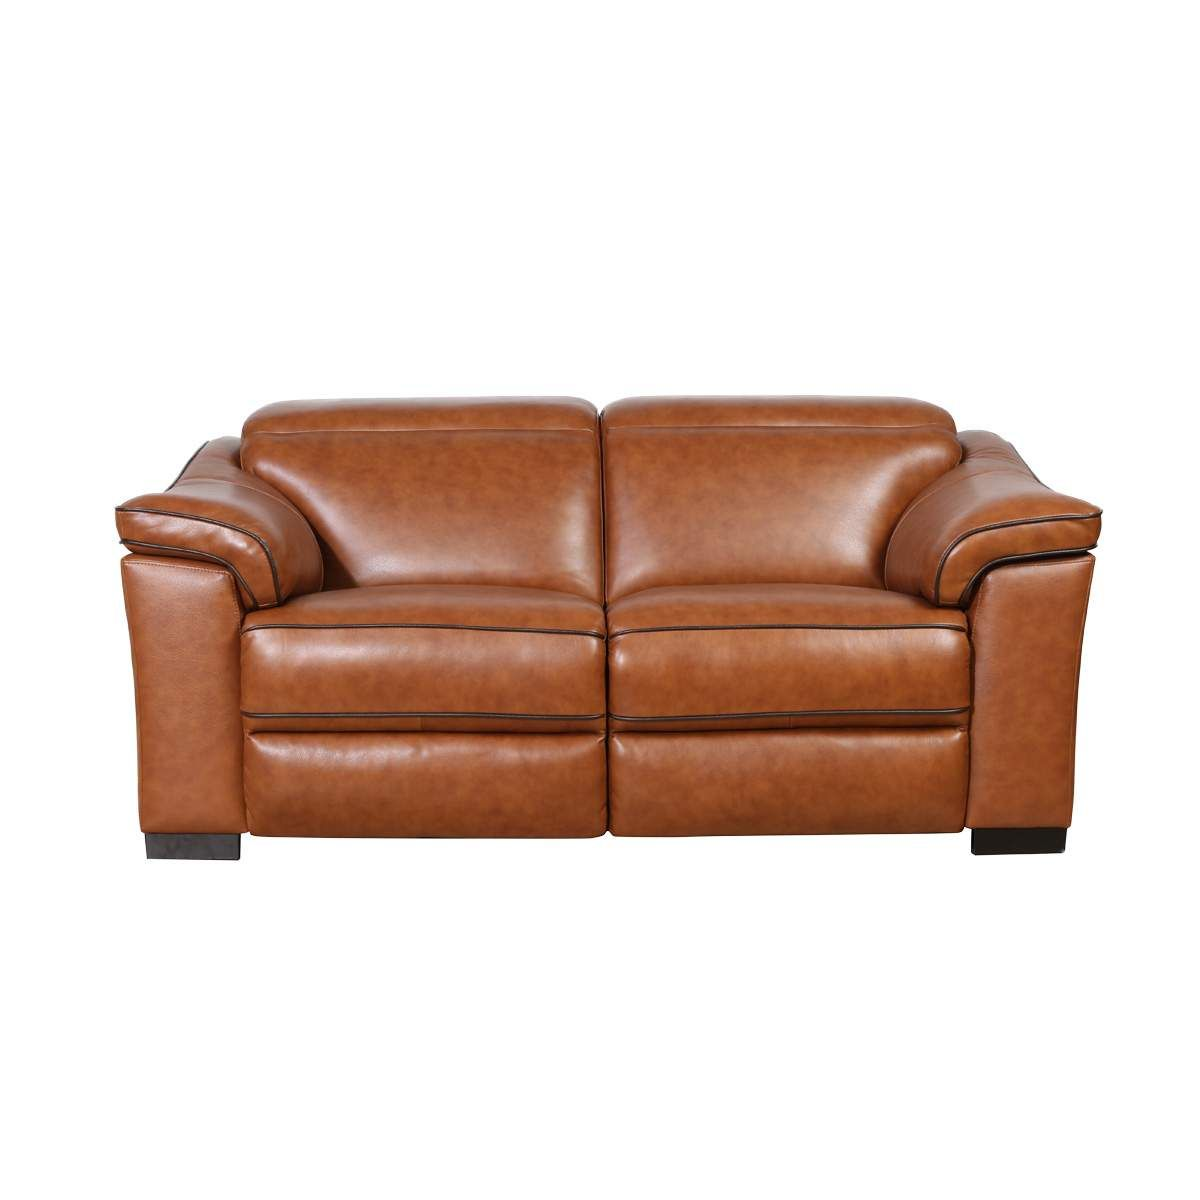 Emma Leather Power Reclining Loveseat With Adjustable Headrests In Brown 71 X4 Modern Recliner Sofa Affordable Living Room Furniture Living Room Sets Furniture